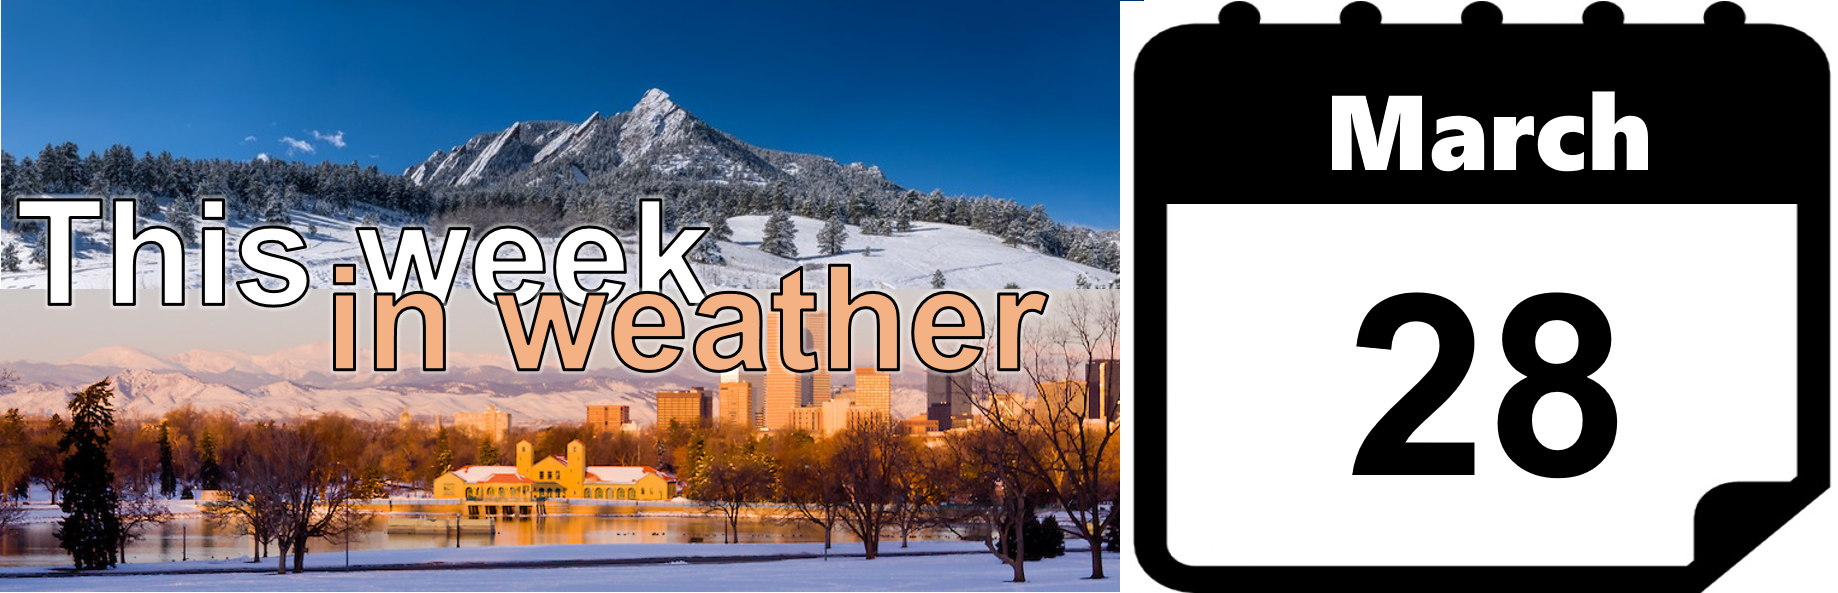 This_Week_in_Weather_March282016